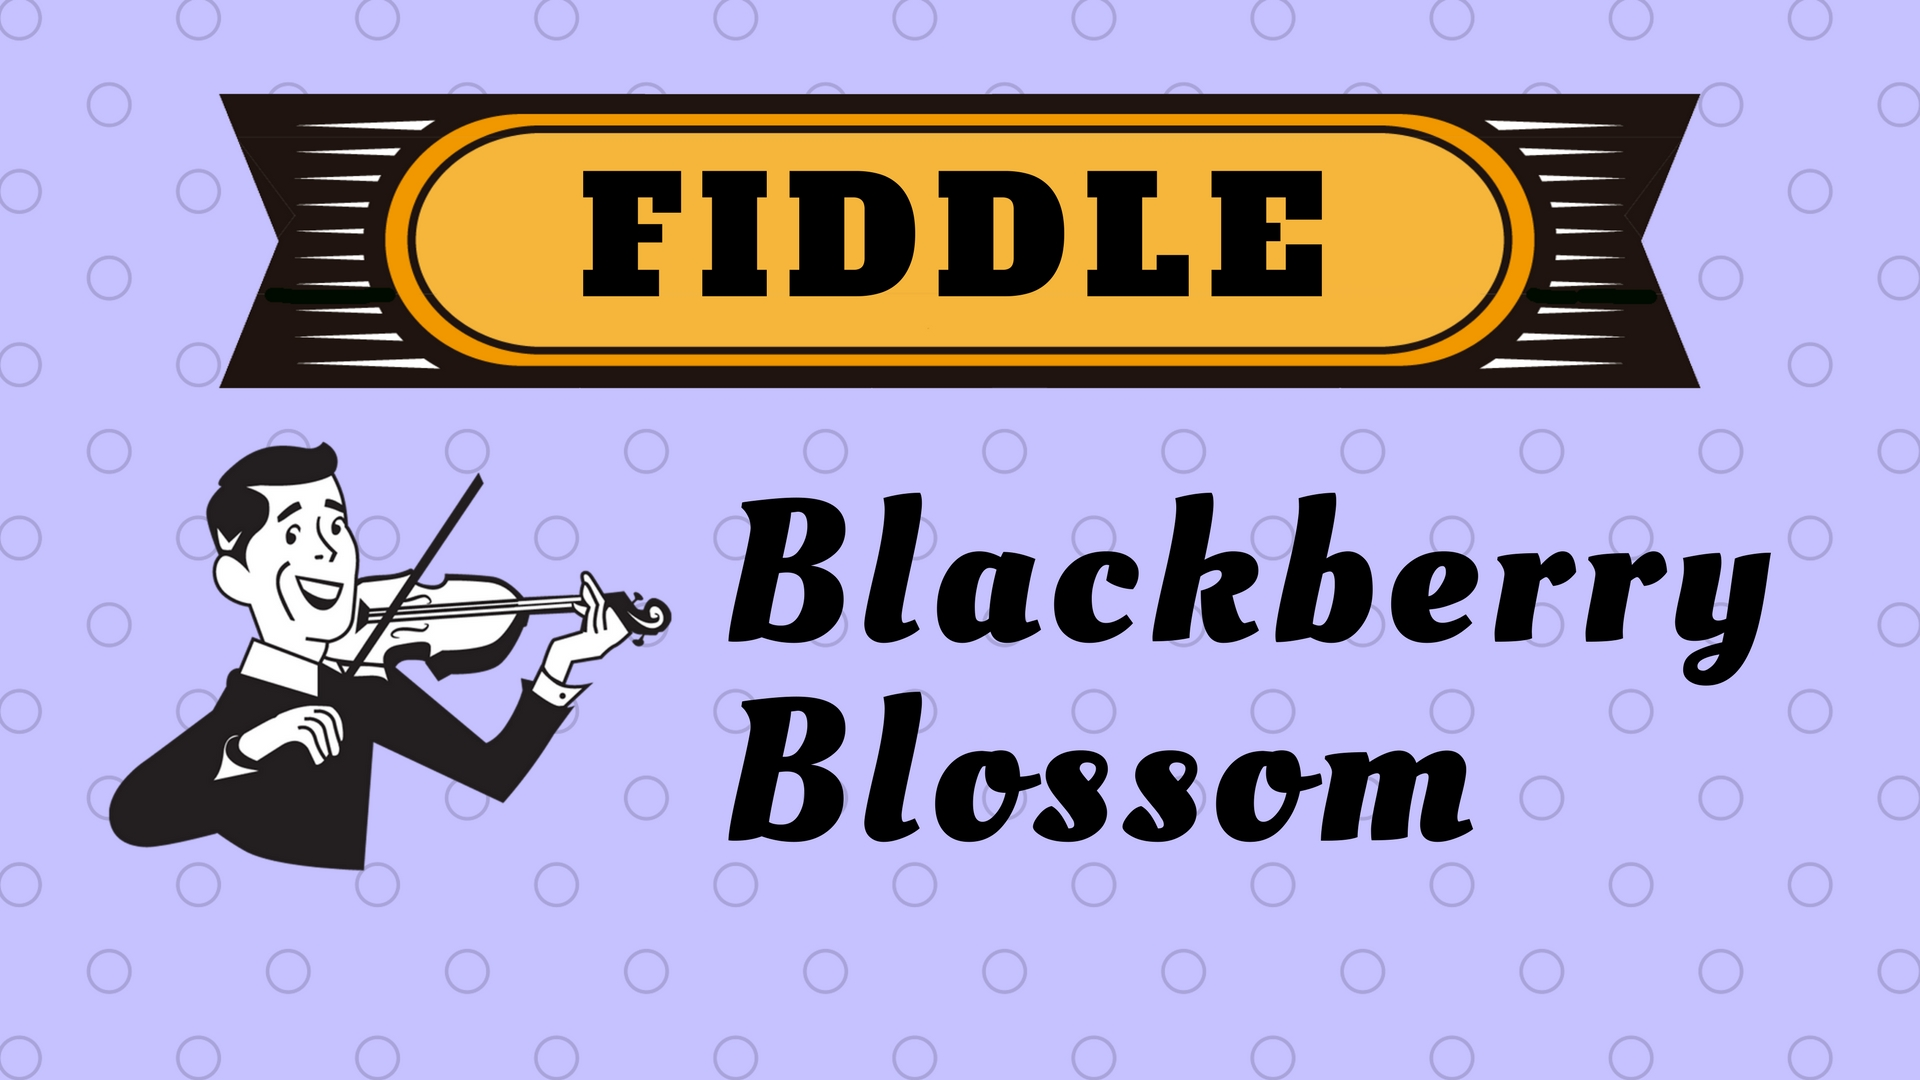 Fiddle Blackberry Blossom